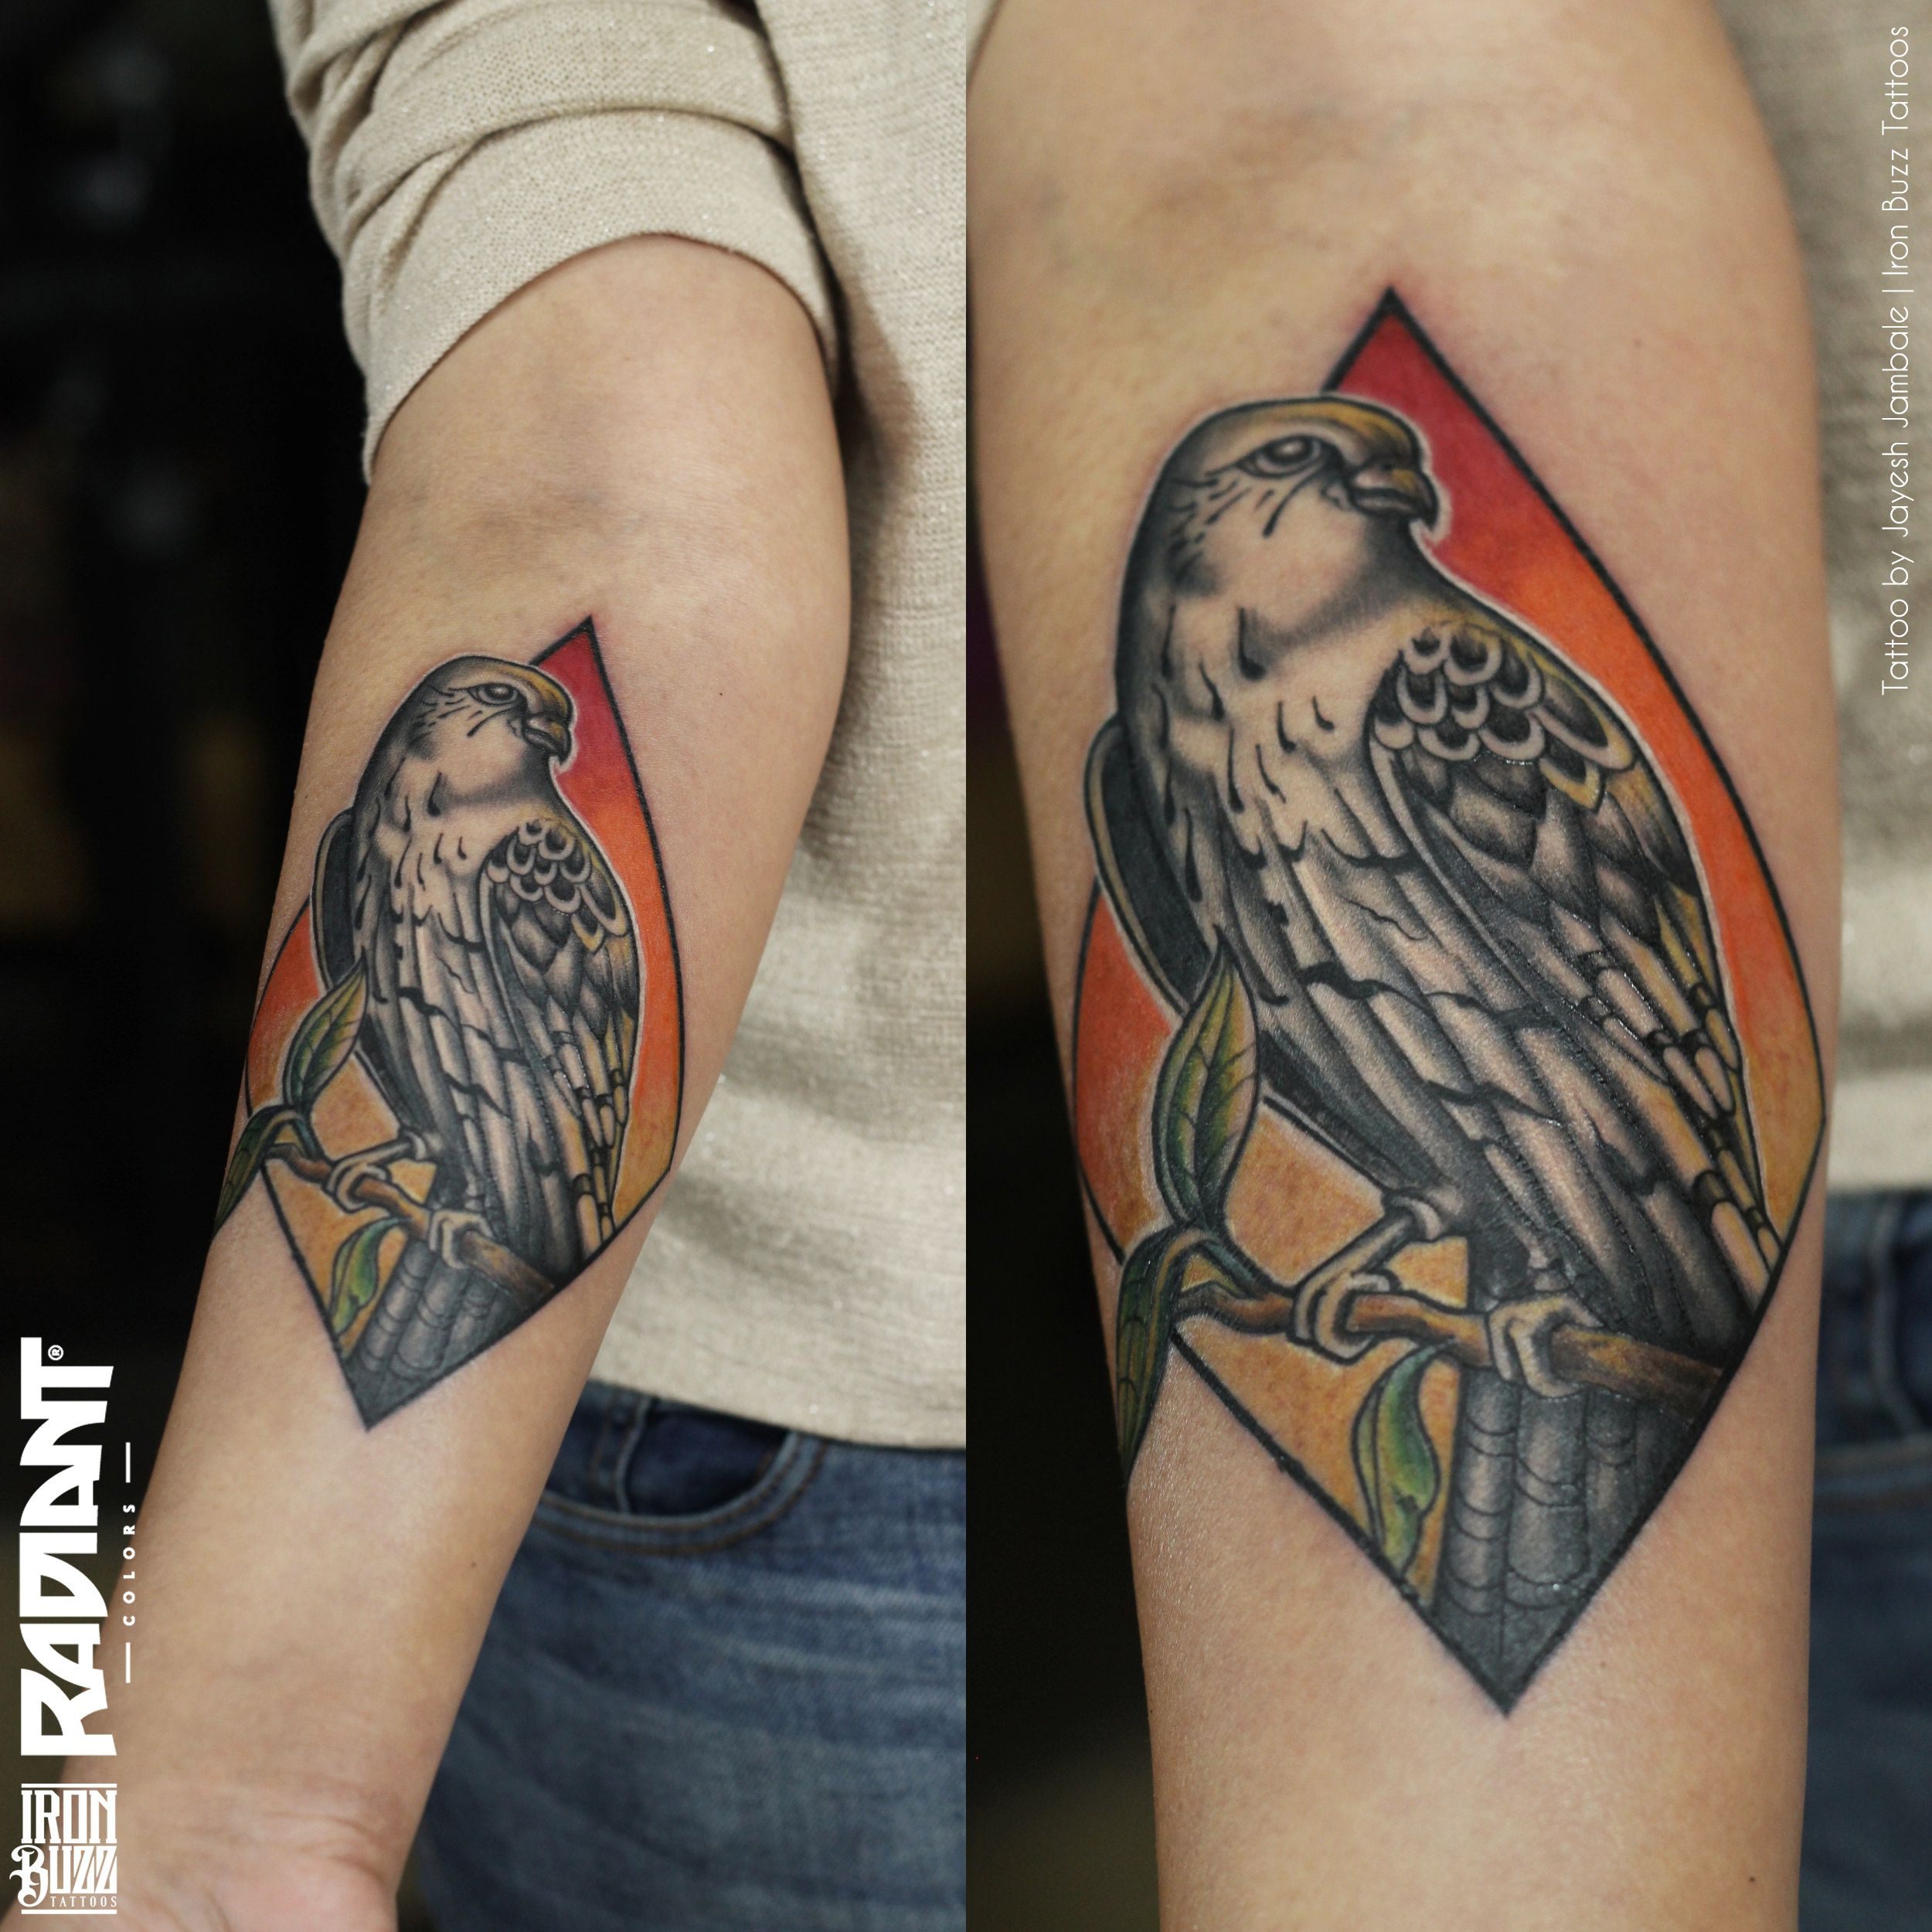 Tattoos By Ex Employees Iron Buzz Tattoos: Neo Traditional Eagle Hawk Bird Tattoo Done At Iron Buzz